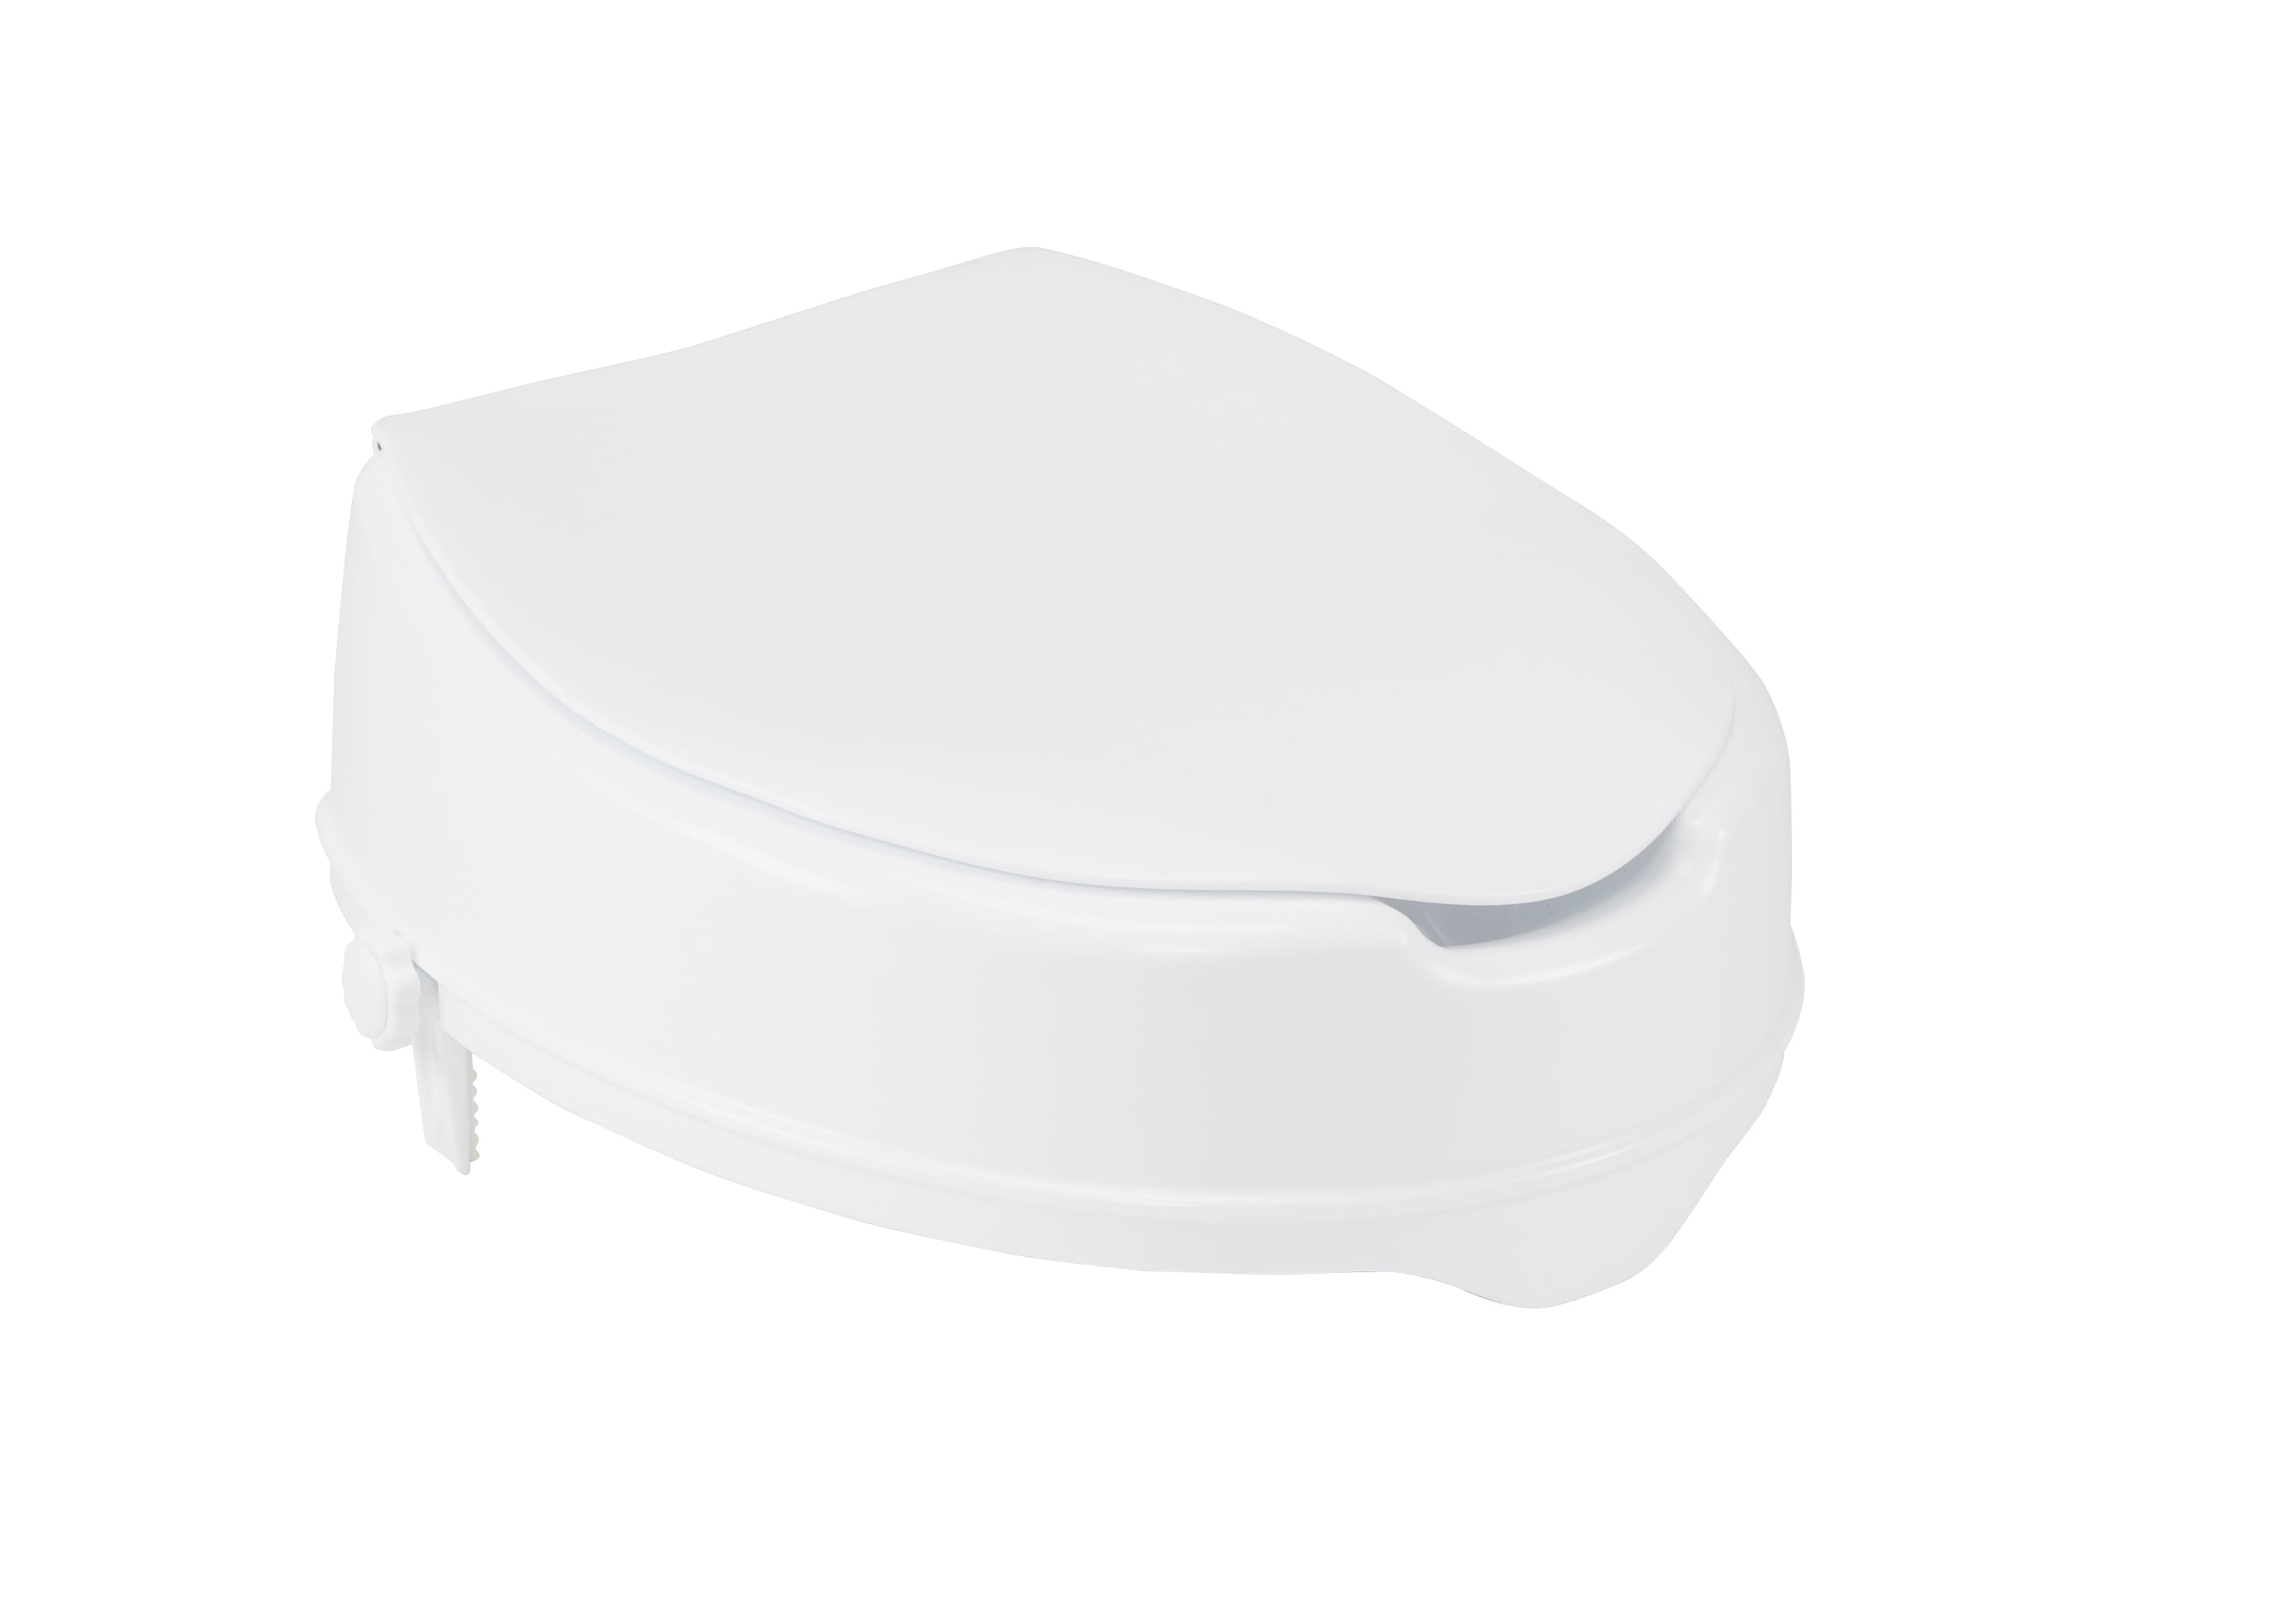 Terrific Drive Medical Raised Toilet Seat With Lock And Lid Standard Seat 4 Gmtry Best Dining Table And Chair Ideas Images Gmtryco